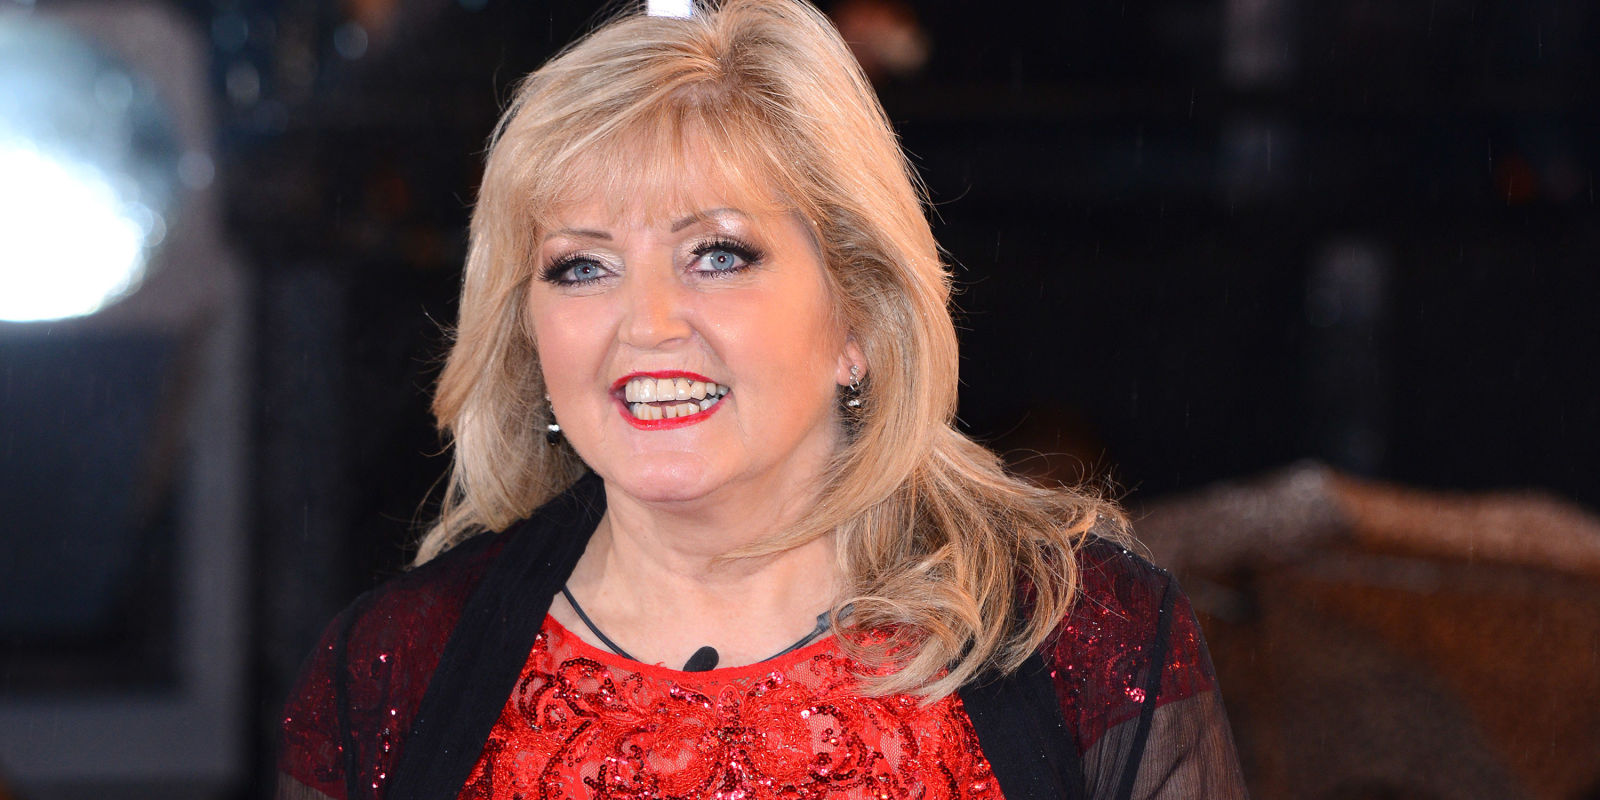 Linda Nolan breaks silence on cancer diagnosis